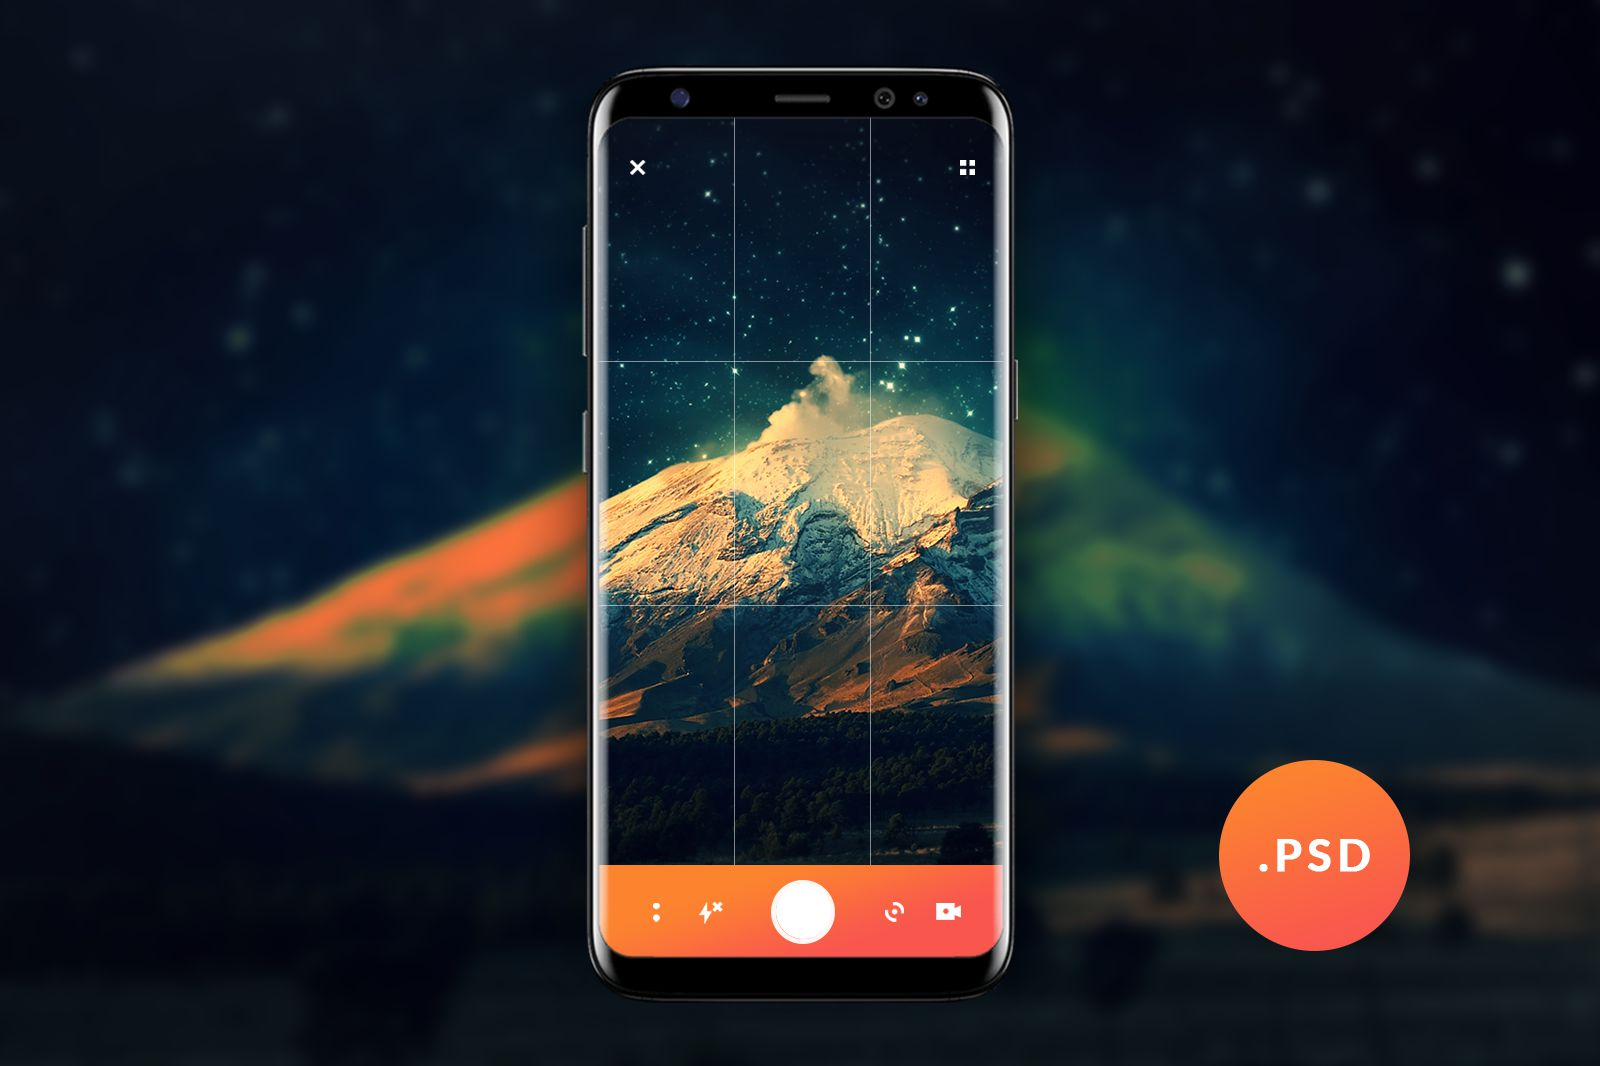 Design Apps With Beautiful Camera Control